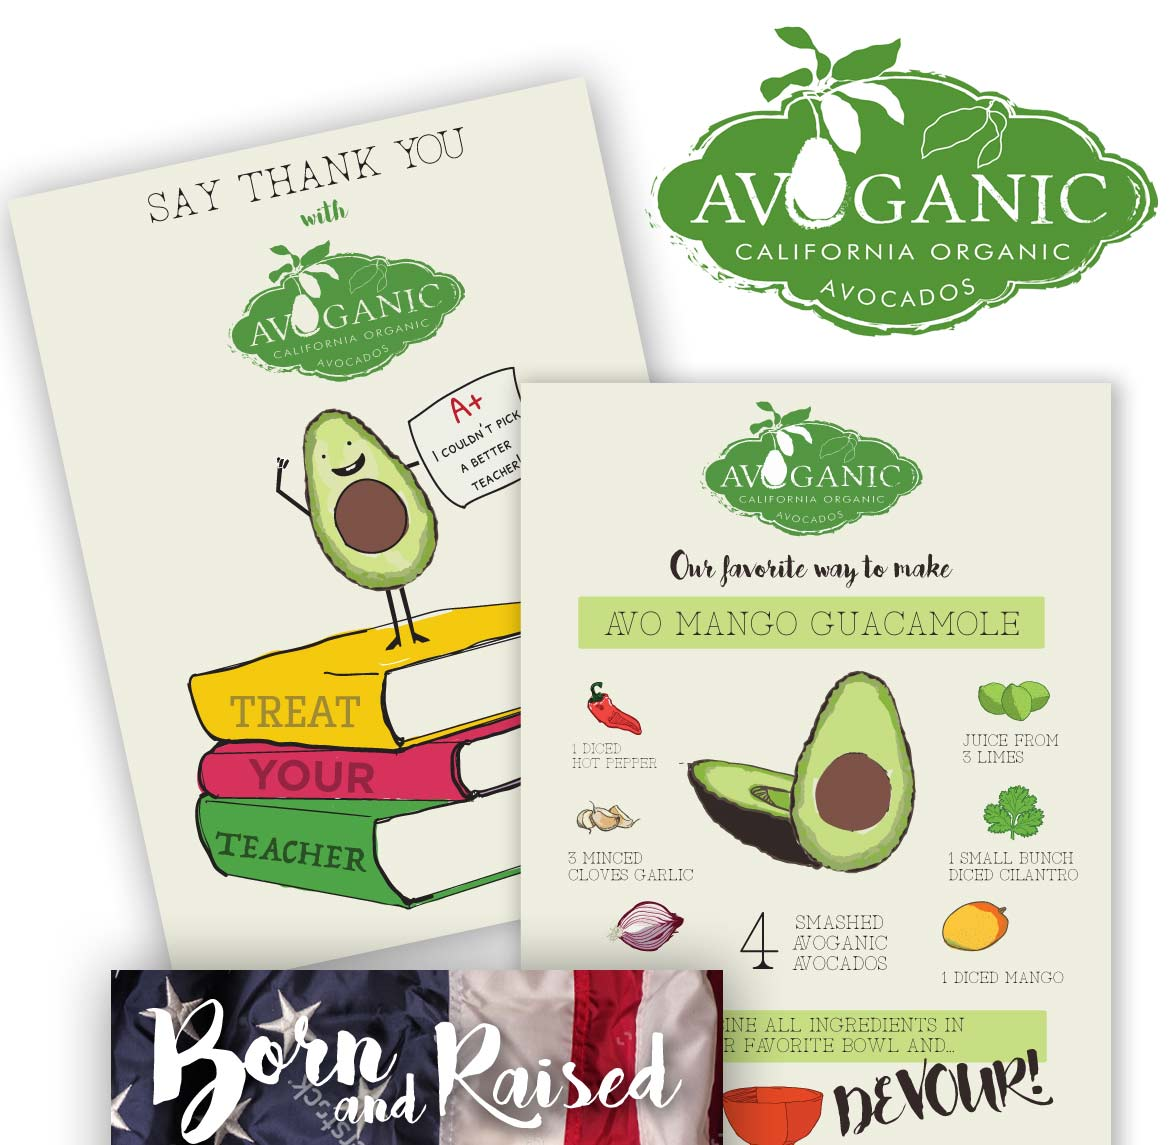 avoganic_featuredimage